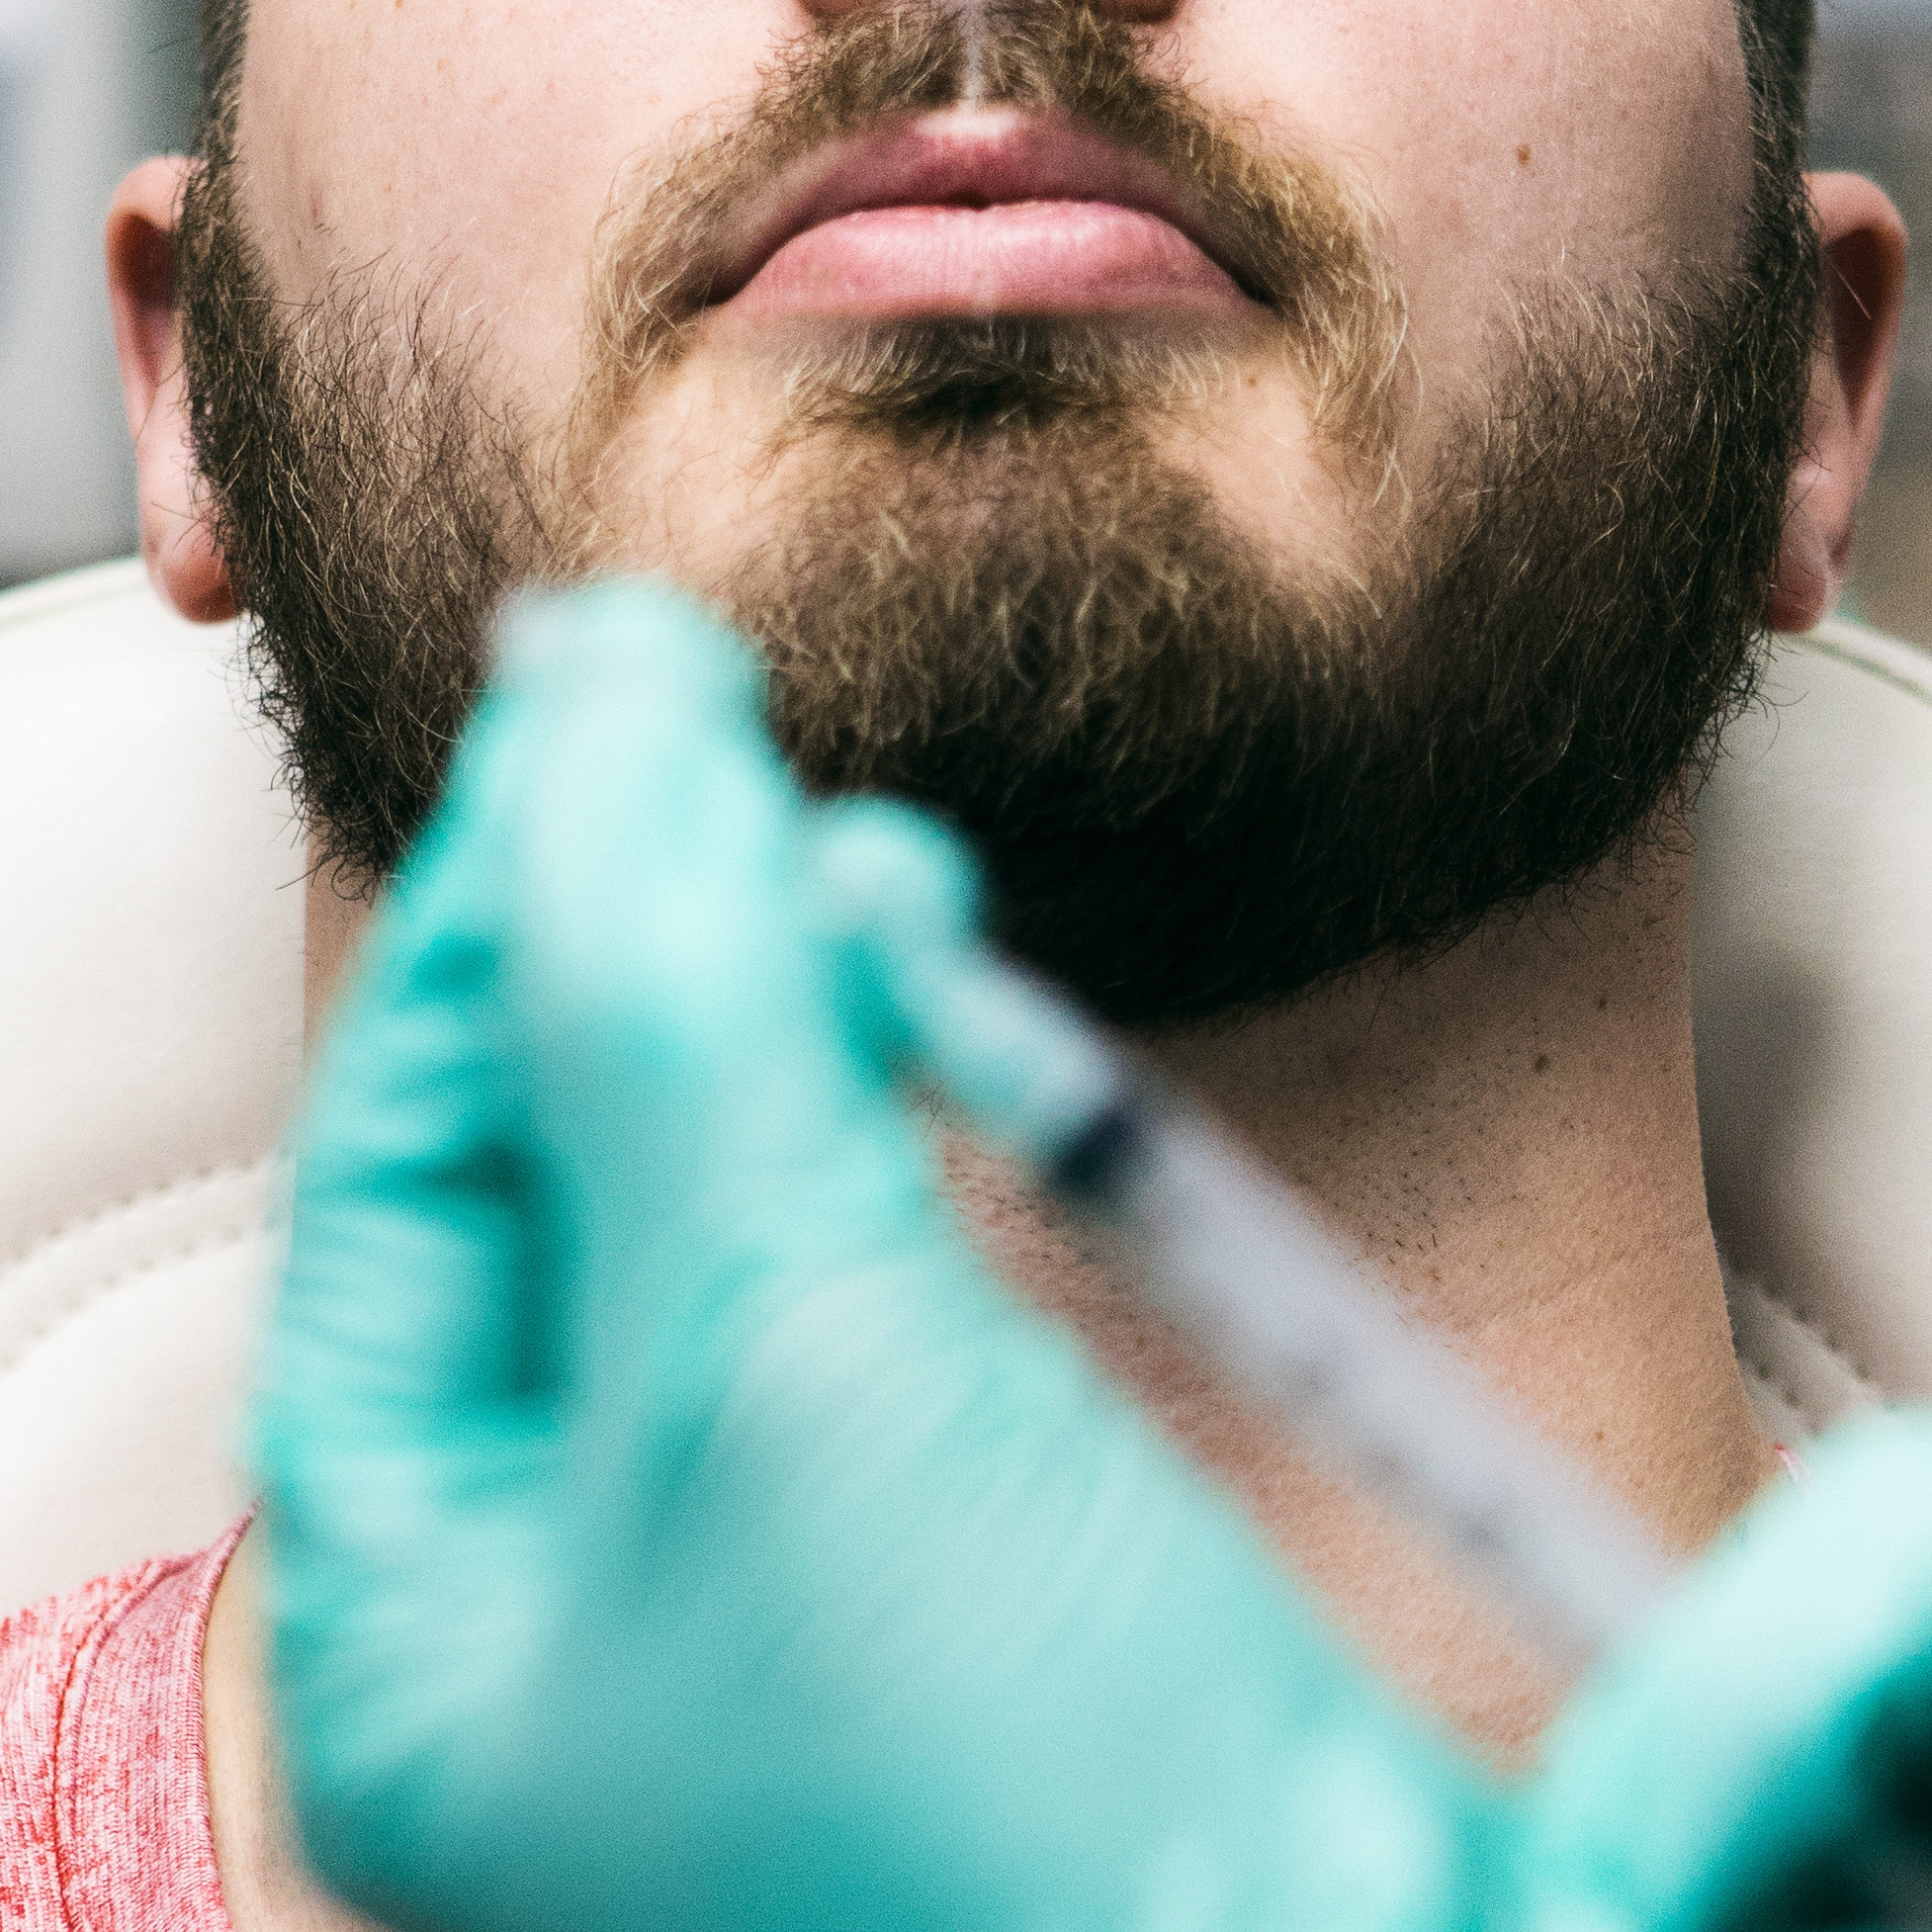 Men Get Injectables, Too! 3 Guys Share Their Experiences Going Under the Needle